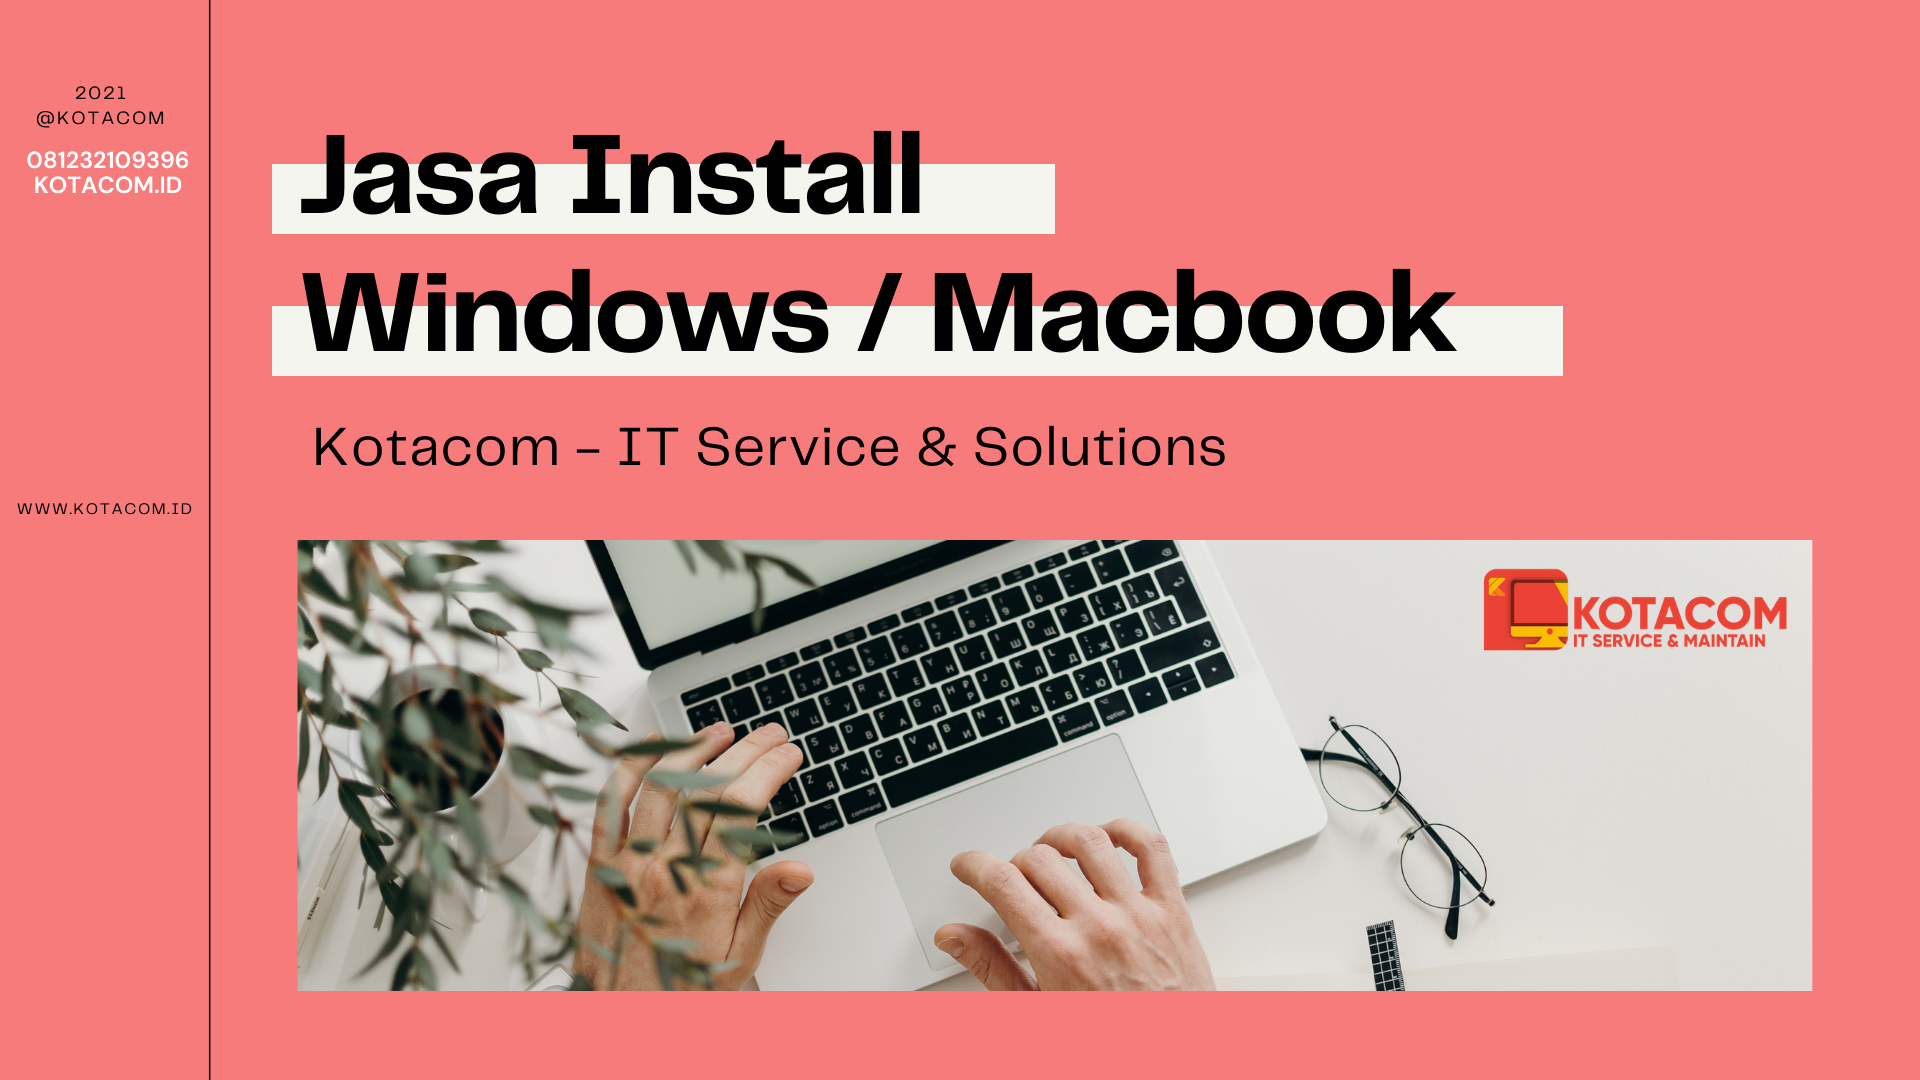 JASA INSTAL JUAL WINDOWS 7 8 10 MICROSOFT OFFICE 2010 2013 2016 ORIGINAL LICENSE ASLI MICROSOFT SURABAYA game pc gresik KOTACOM - Service Komputer surabaya – Jasa Install windows – Service Mac macbook surabaya – Service Laptop surabaya – Pasang GPS – Pasang CCTV.